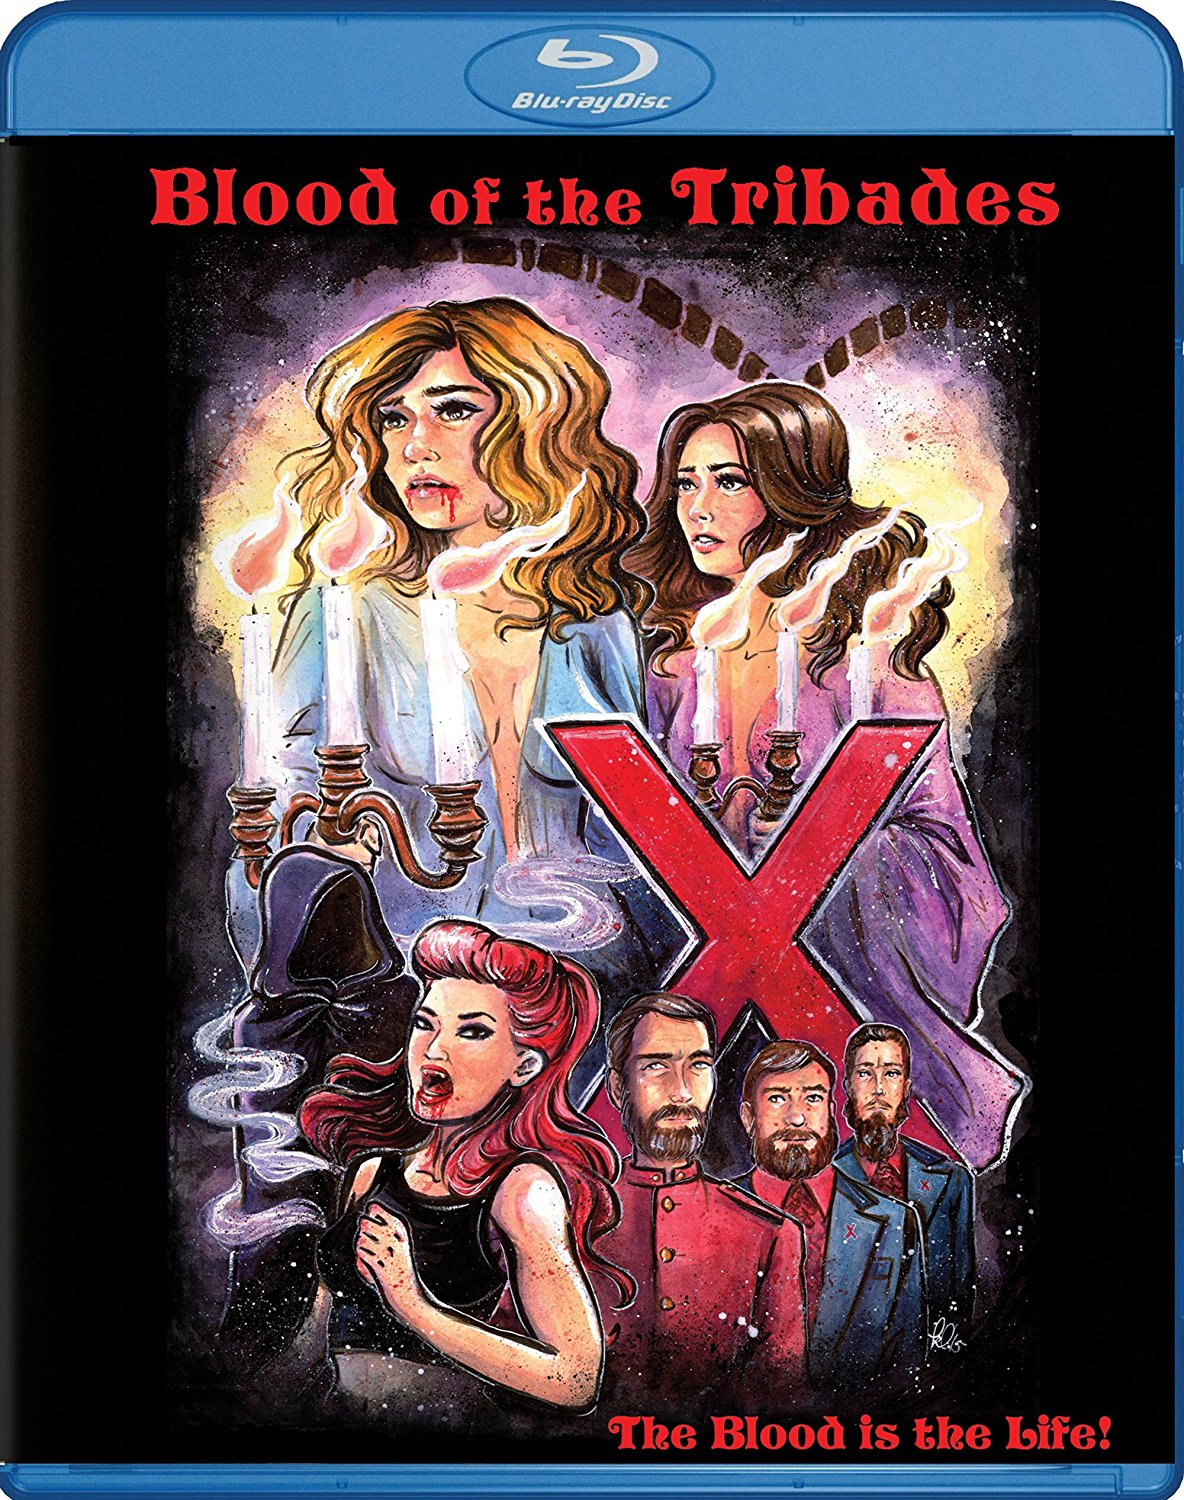 blood of the tribades - Eyegasm: The Best and Worst Home Video Cover Art - 5/2/17